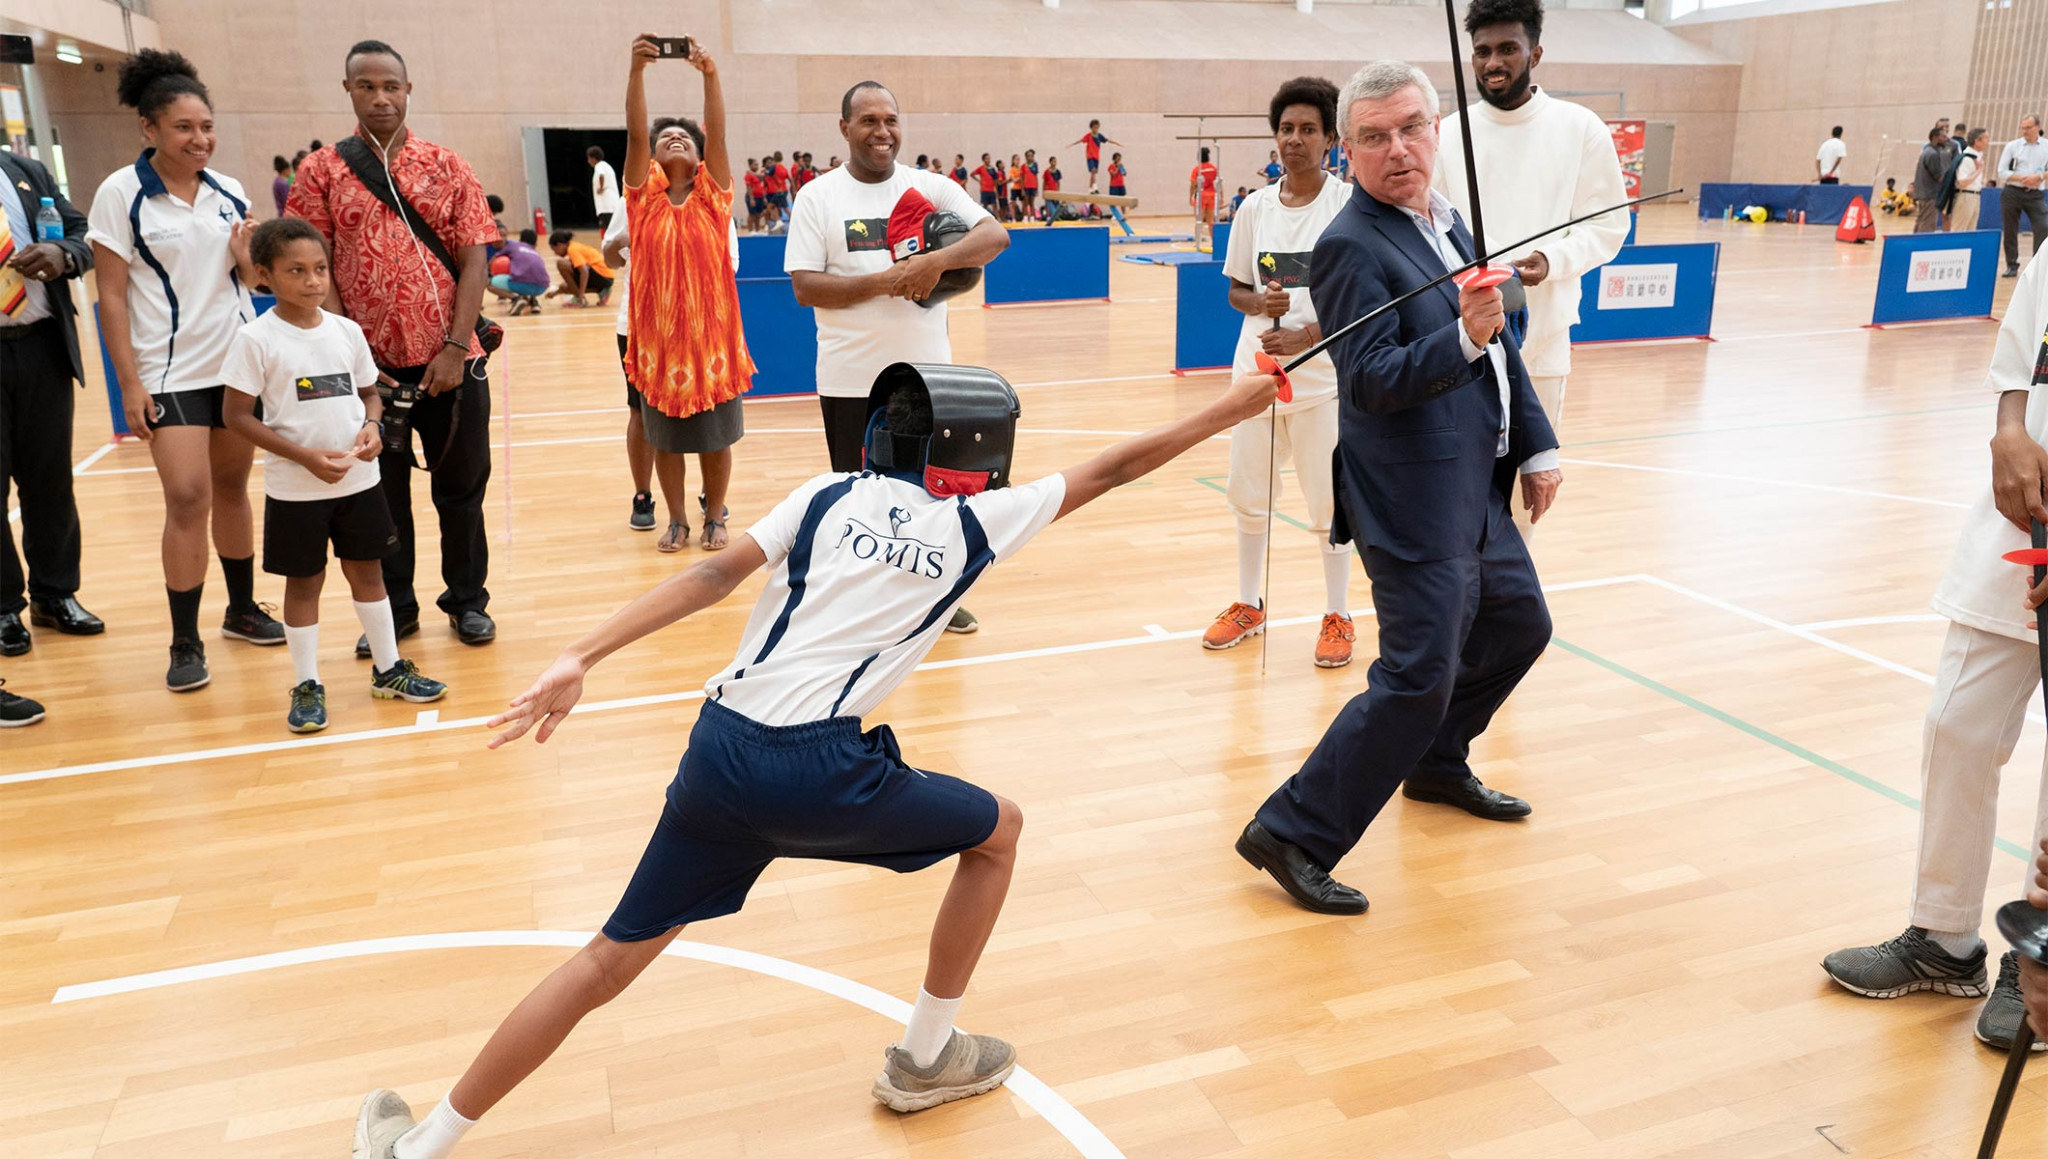 Thomas Bach showed off his fencing skills in Papua New Guinea last month ©IOC